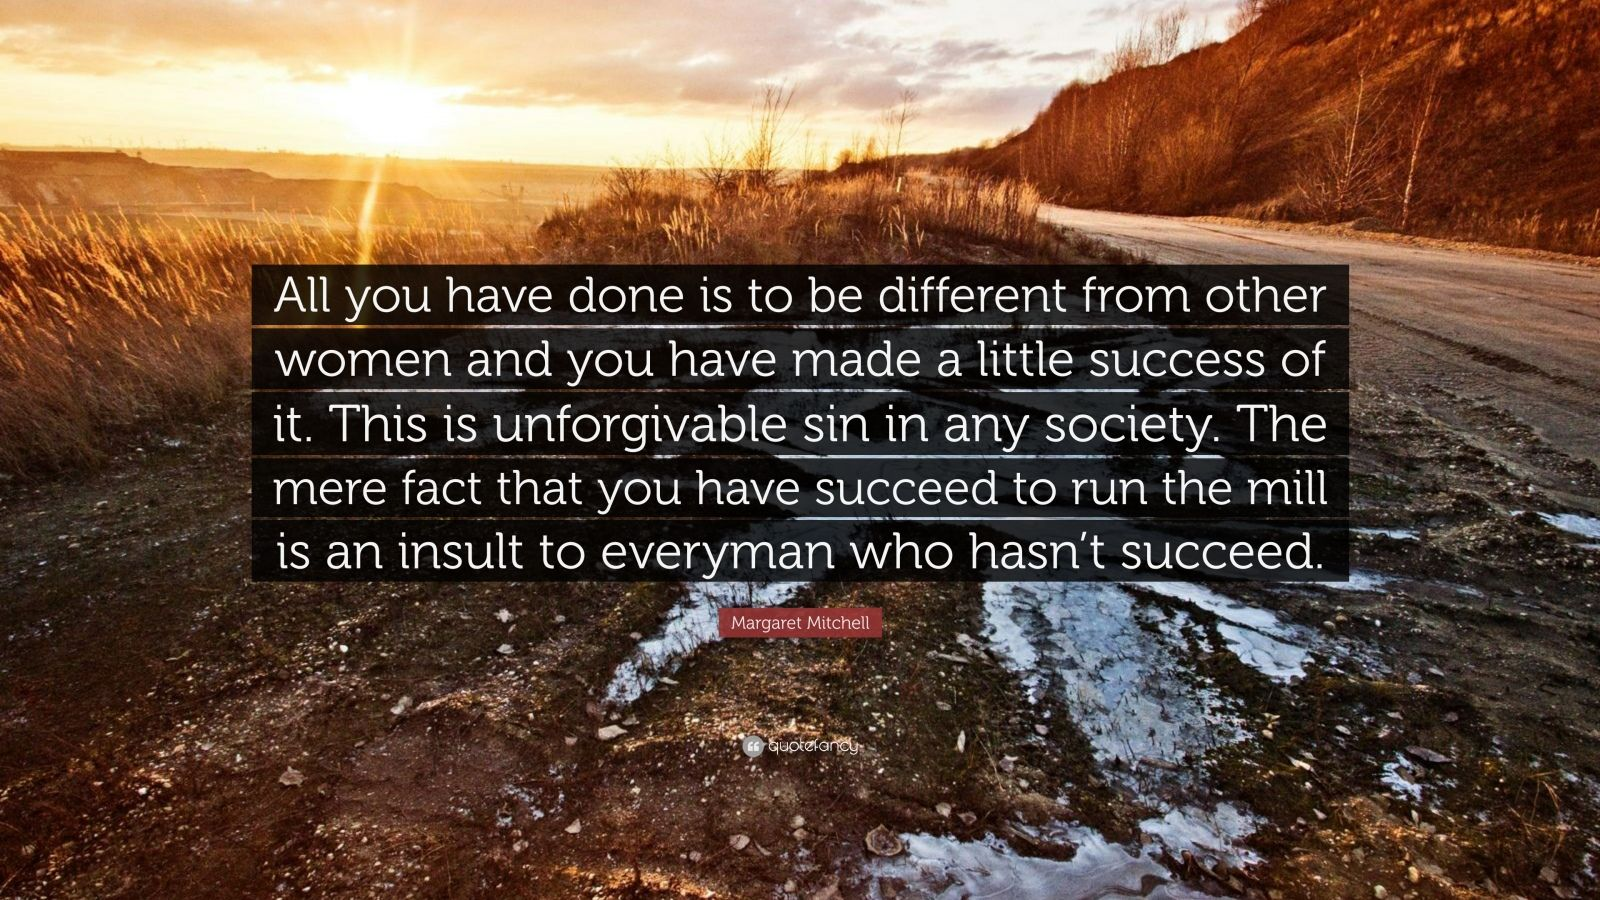 """Margaret Mitchell Quote: """"All you have done is to be different from other women and you have made a little success of it. This is unforgivable sin in any society. The mere fact that you have succeed to run the mill is an insult to everyman who hasn't succeed."""""""